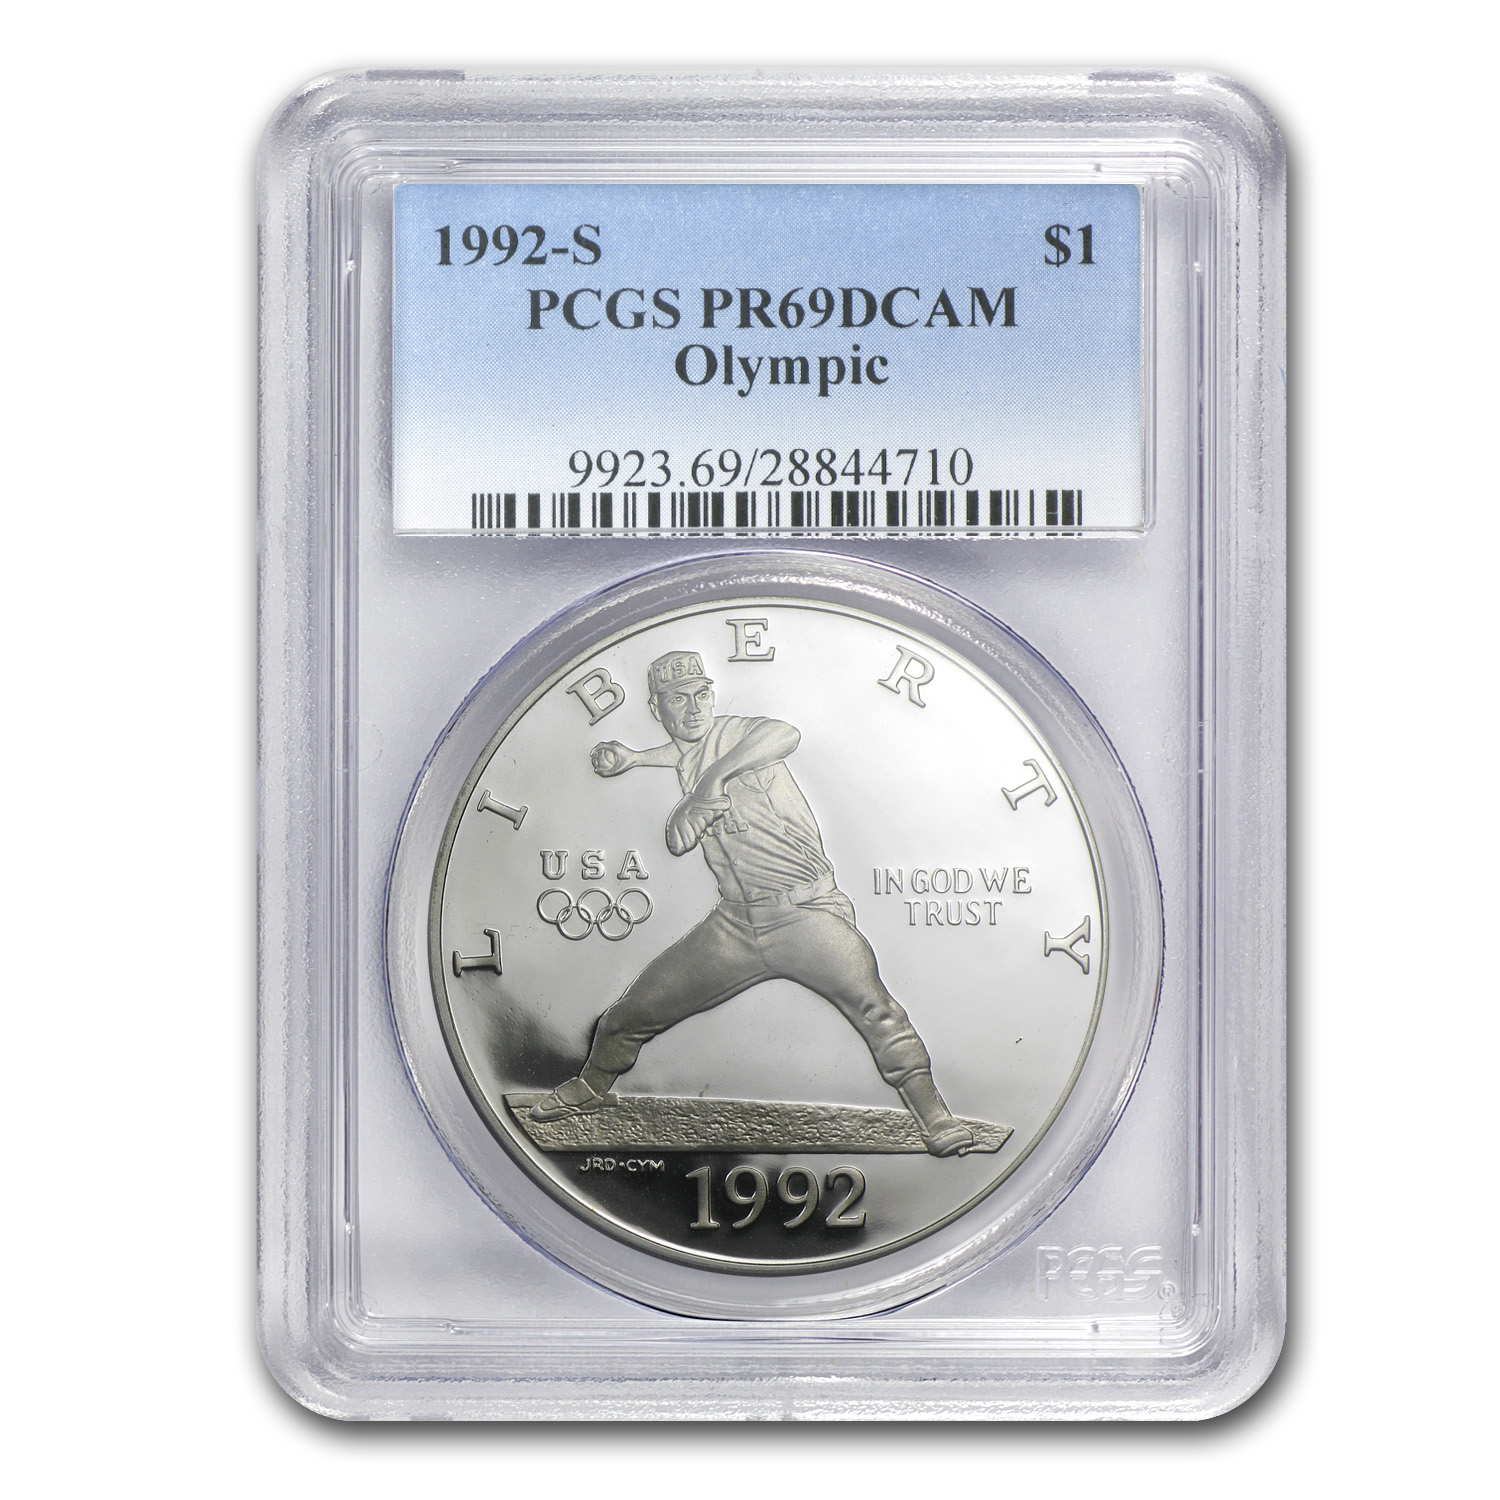 1992-S Olympic Baseball $1 Silver Commemorative PR-69 PCGS